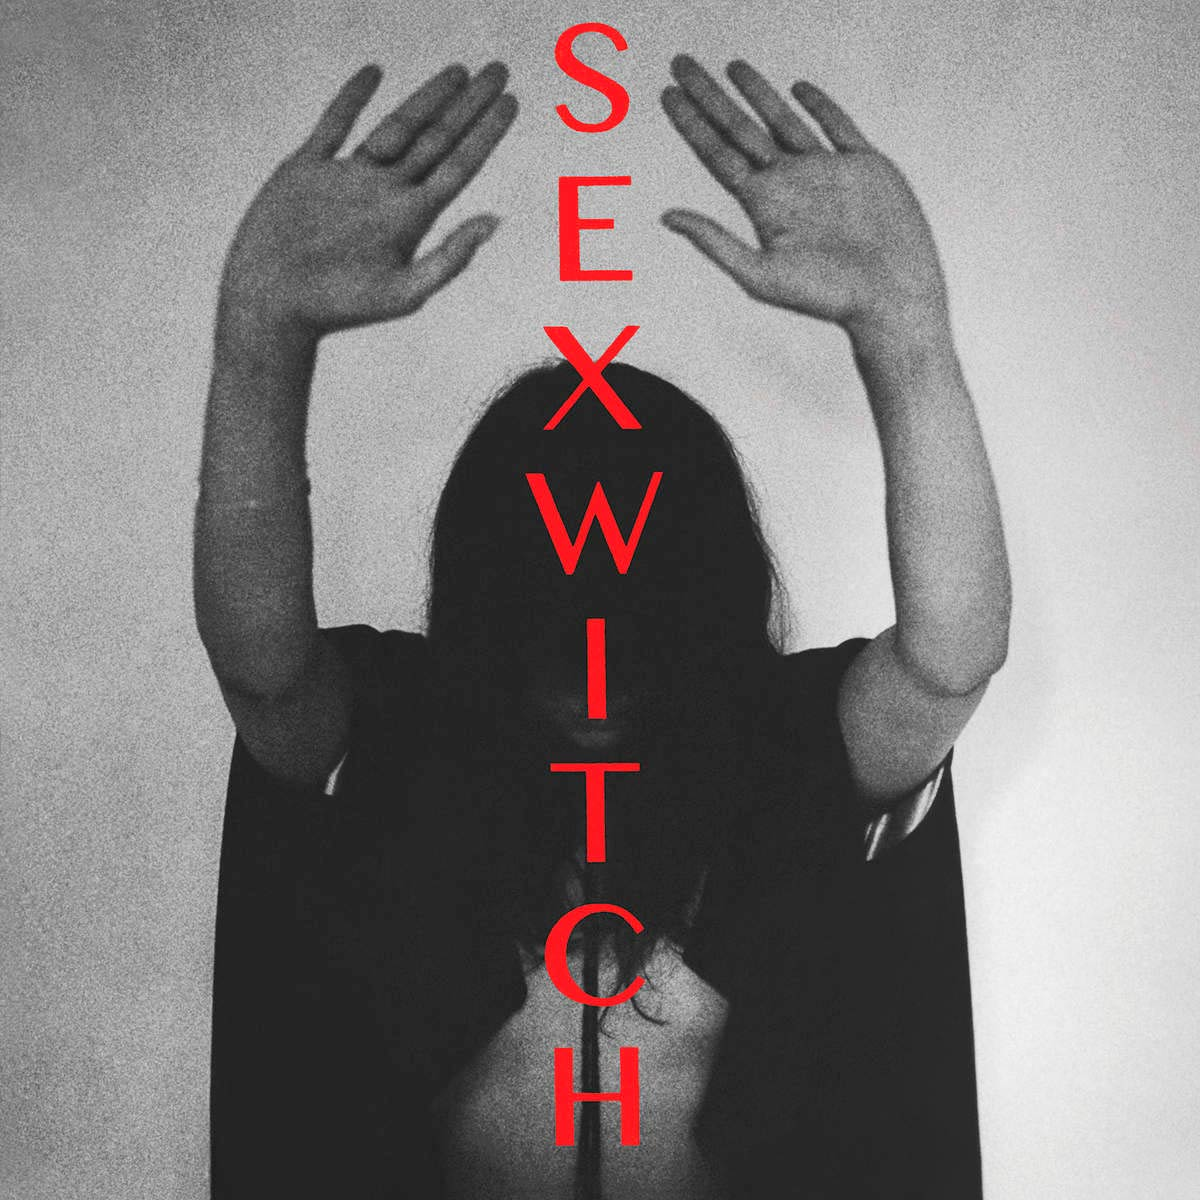 Sexwitch